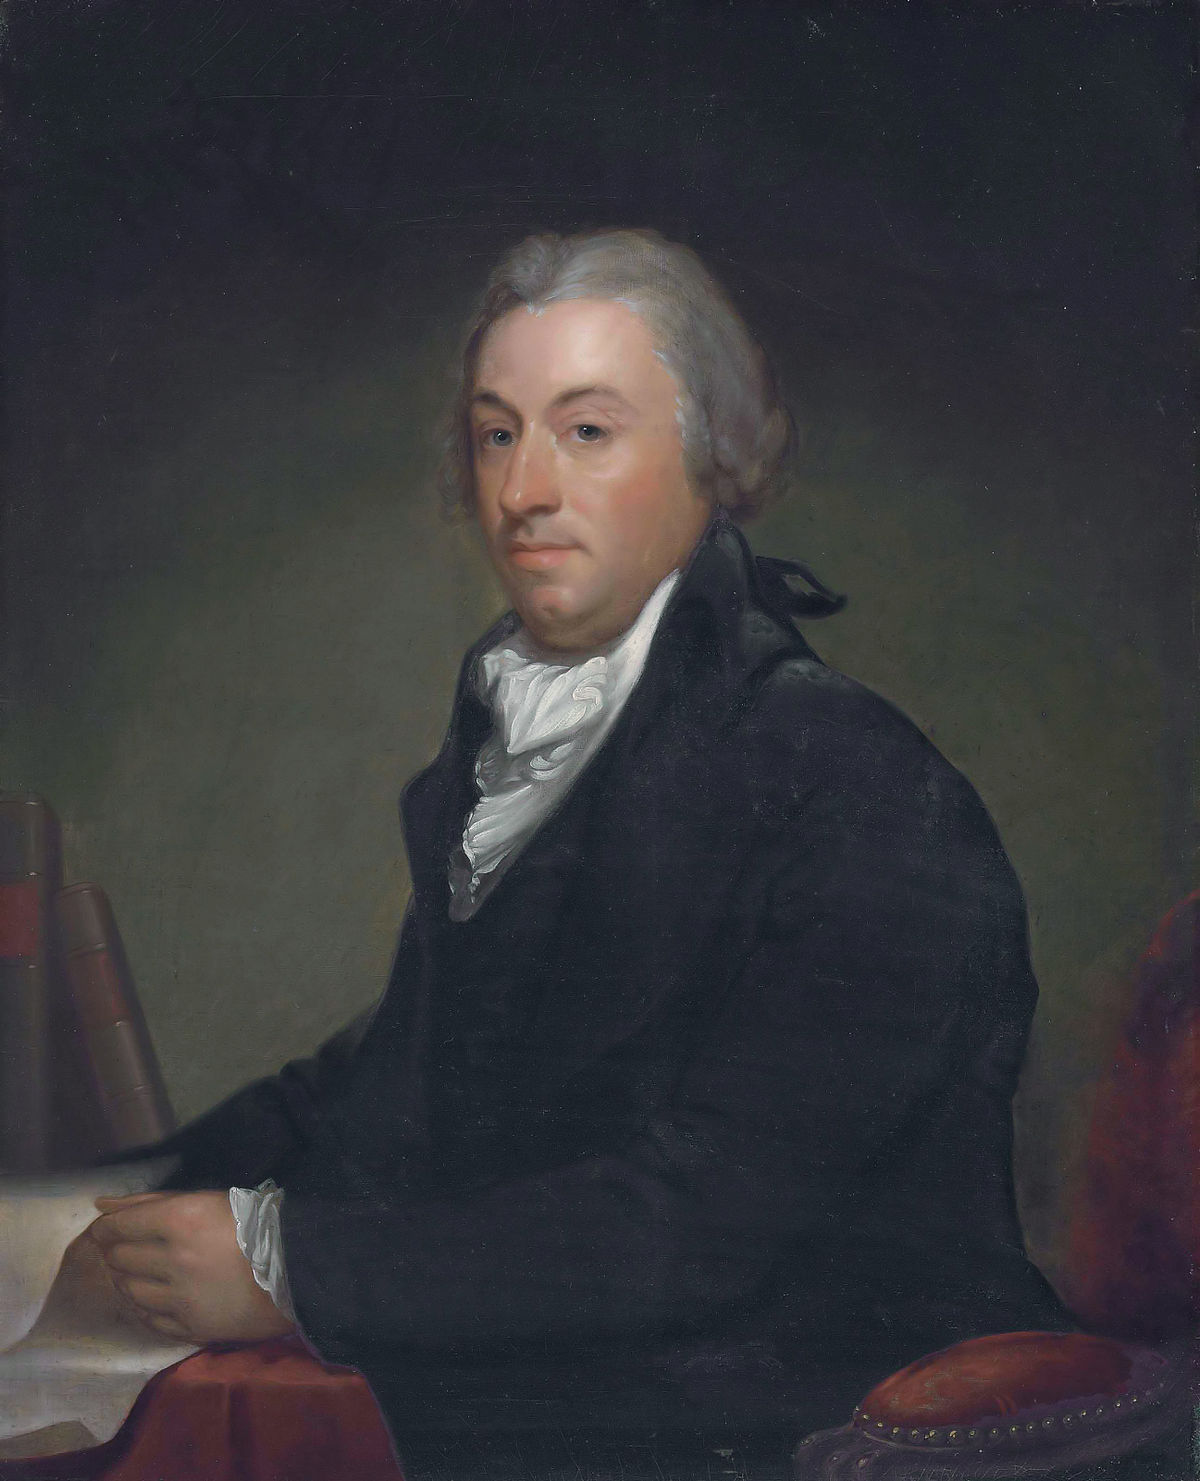 Robert Livingston